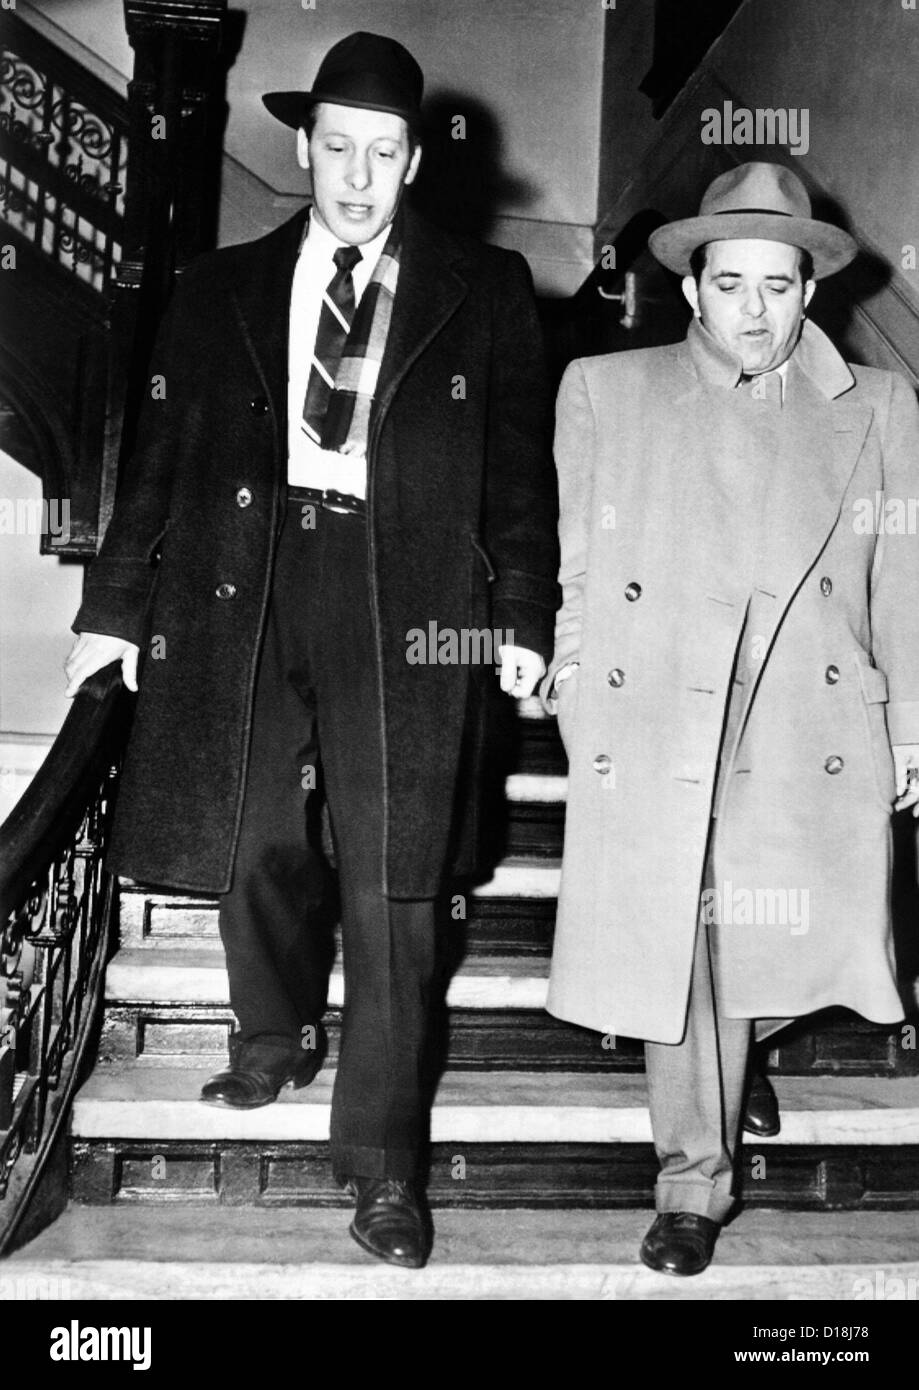 Anthony Anastasia (right) after his arrest by immigration authorities on charges of entering the country illegally. - Stock Image